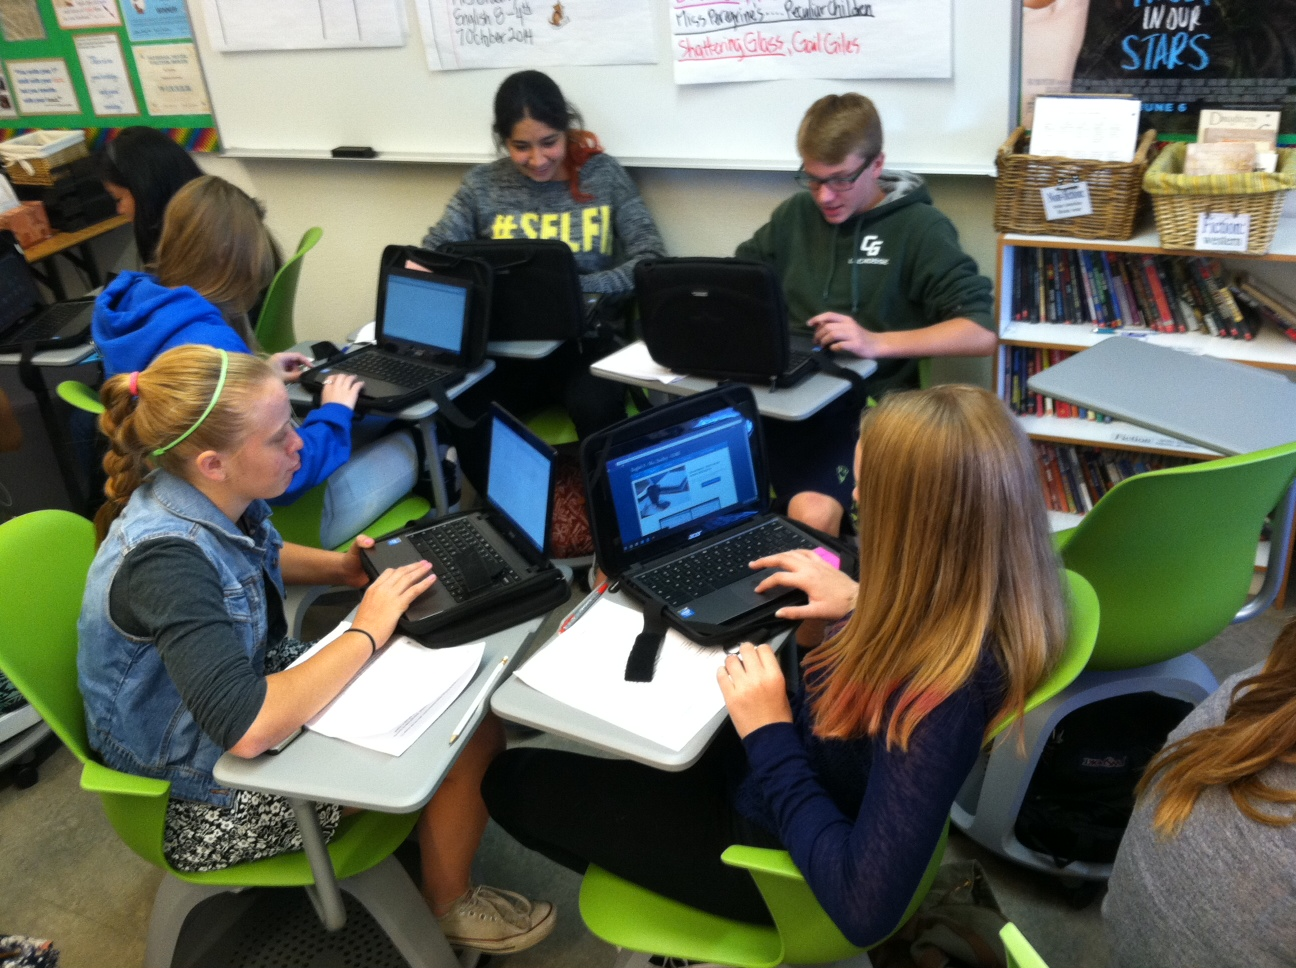 Students working together in rolling chairs